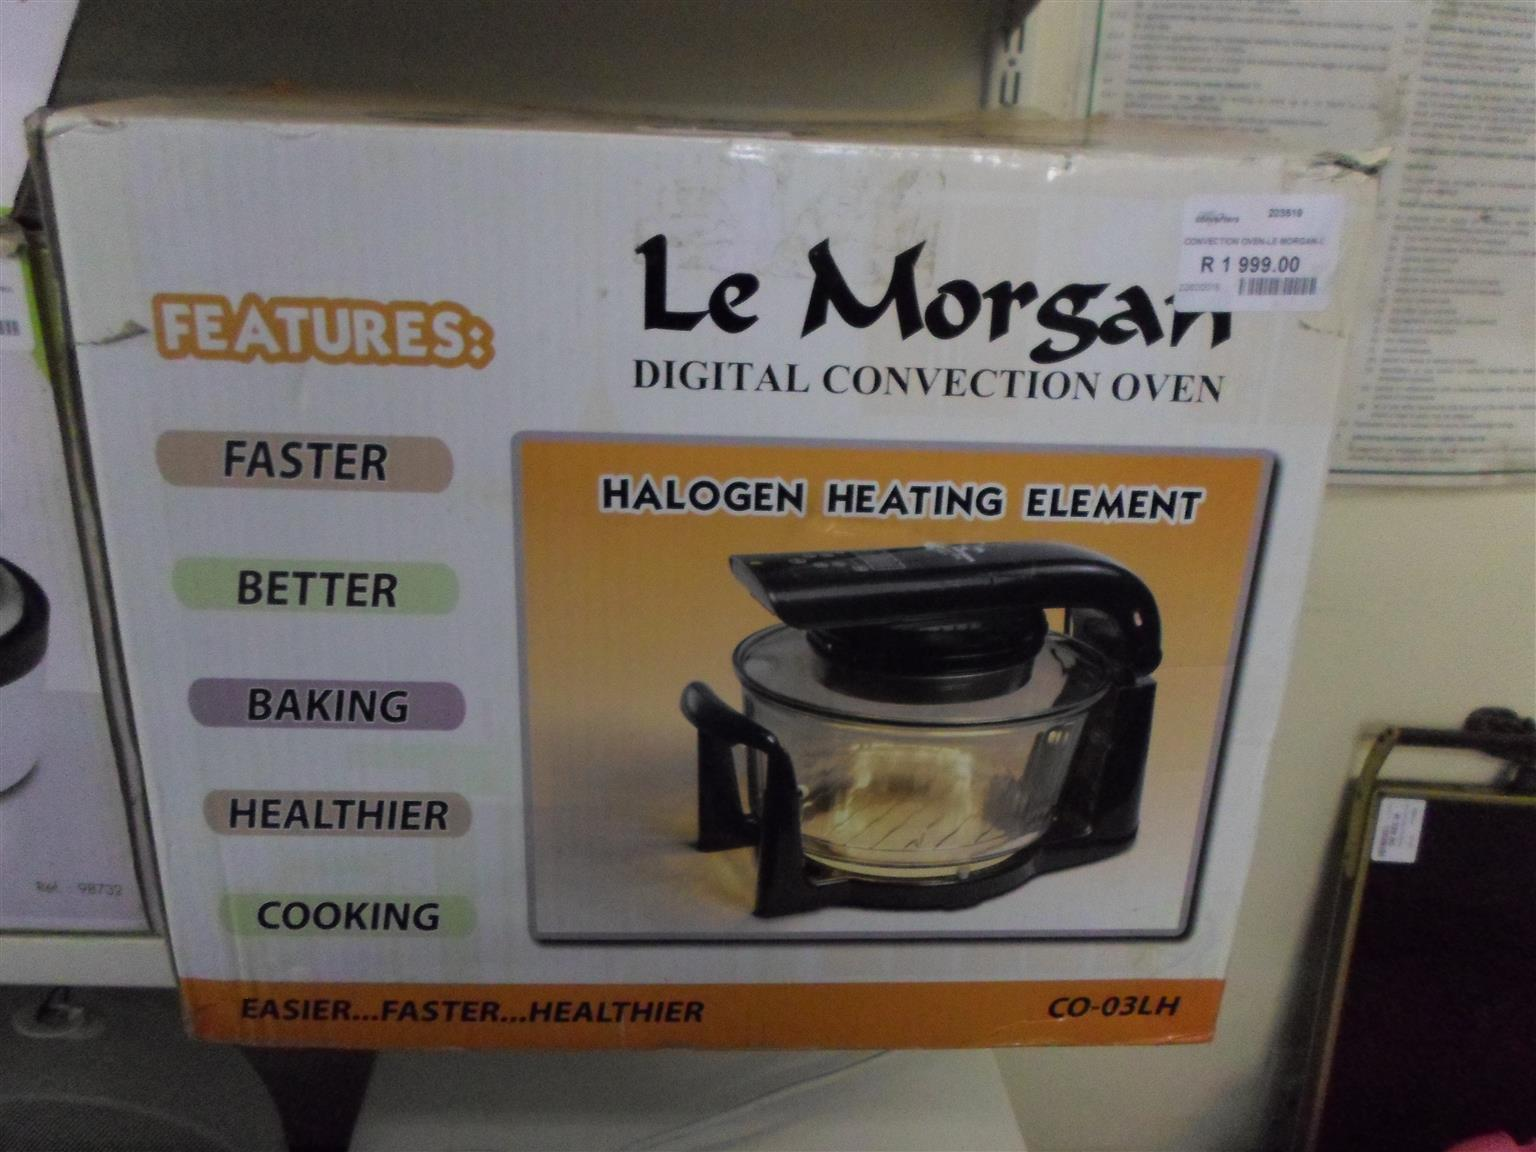 Le Morgan Digital Conviction Oven